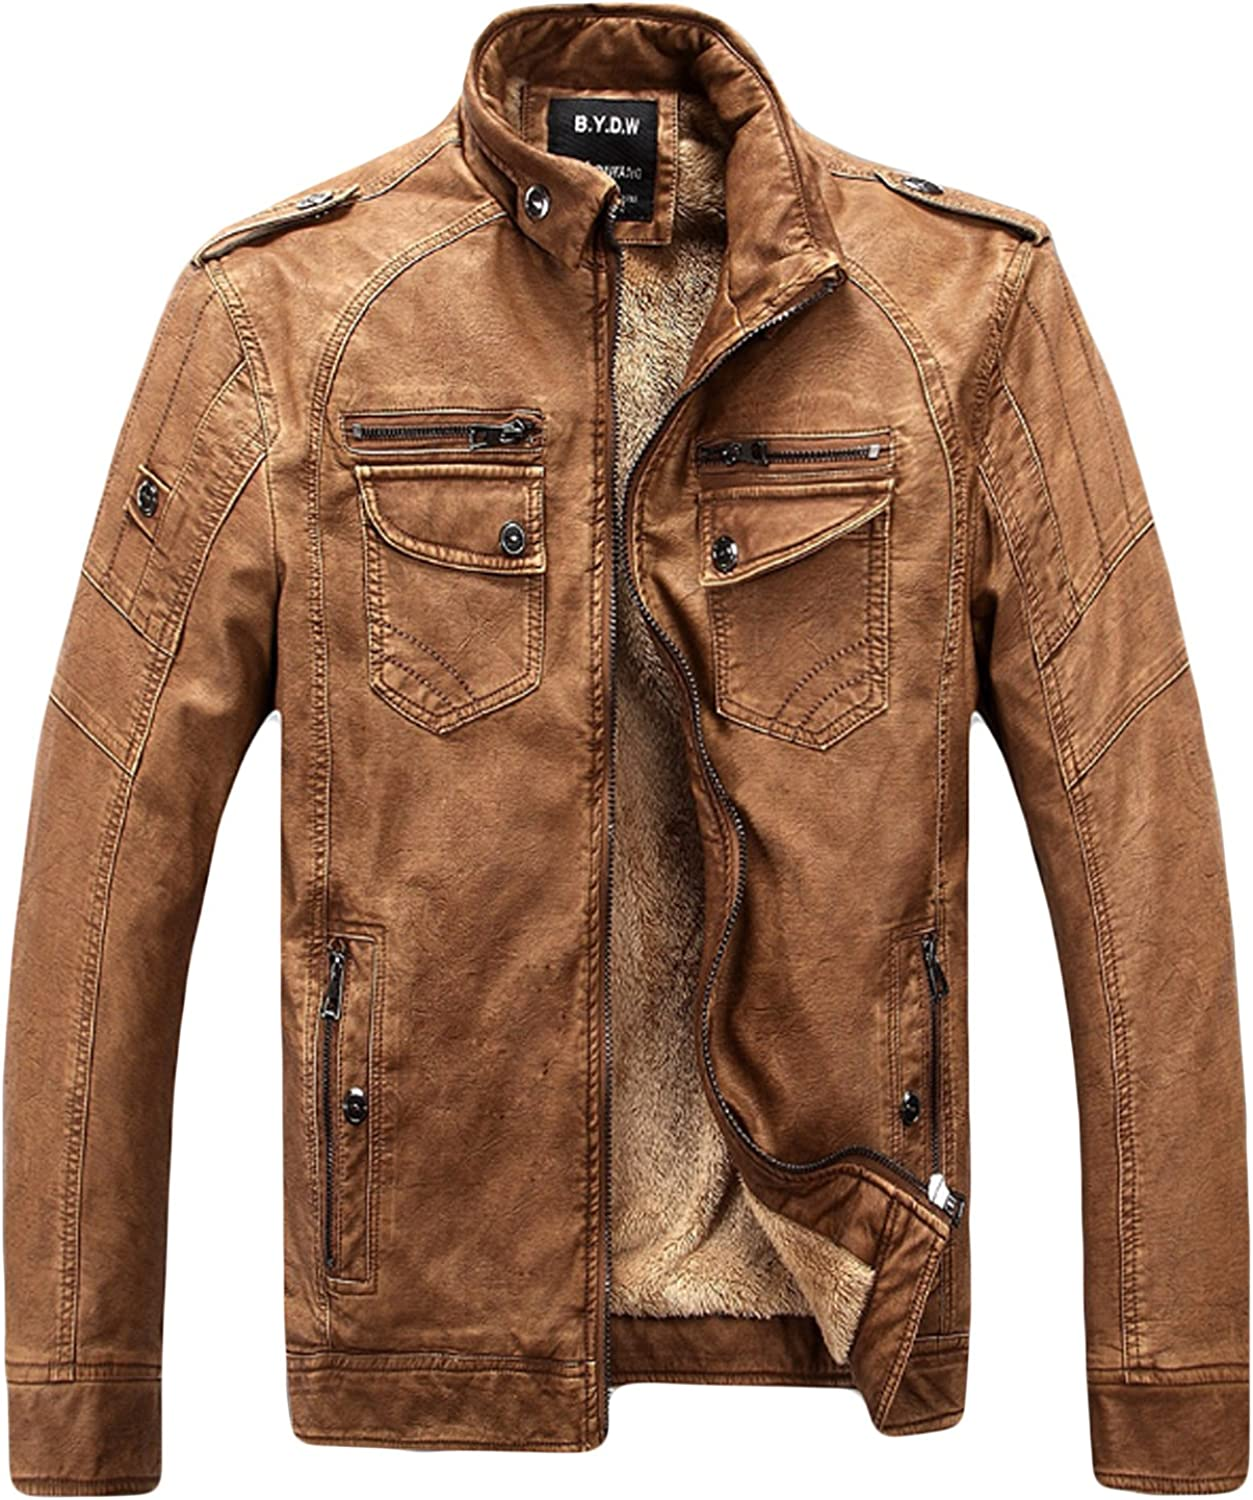 Bestgift Men's Stand Collar Outwears Fleece Lined Faux Leather Retro Short Jacket with Pockets